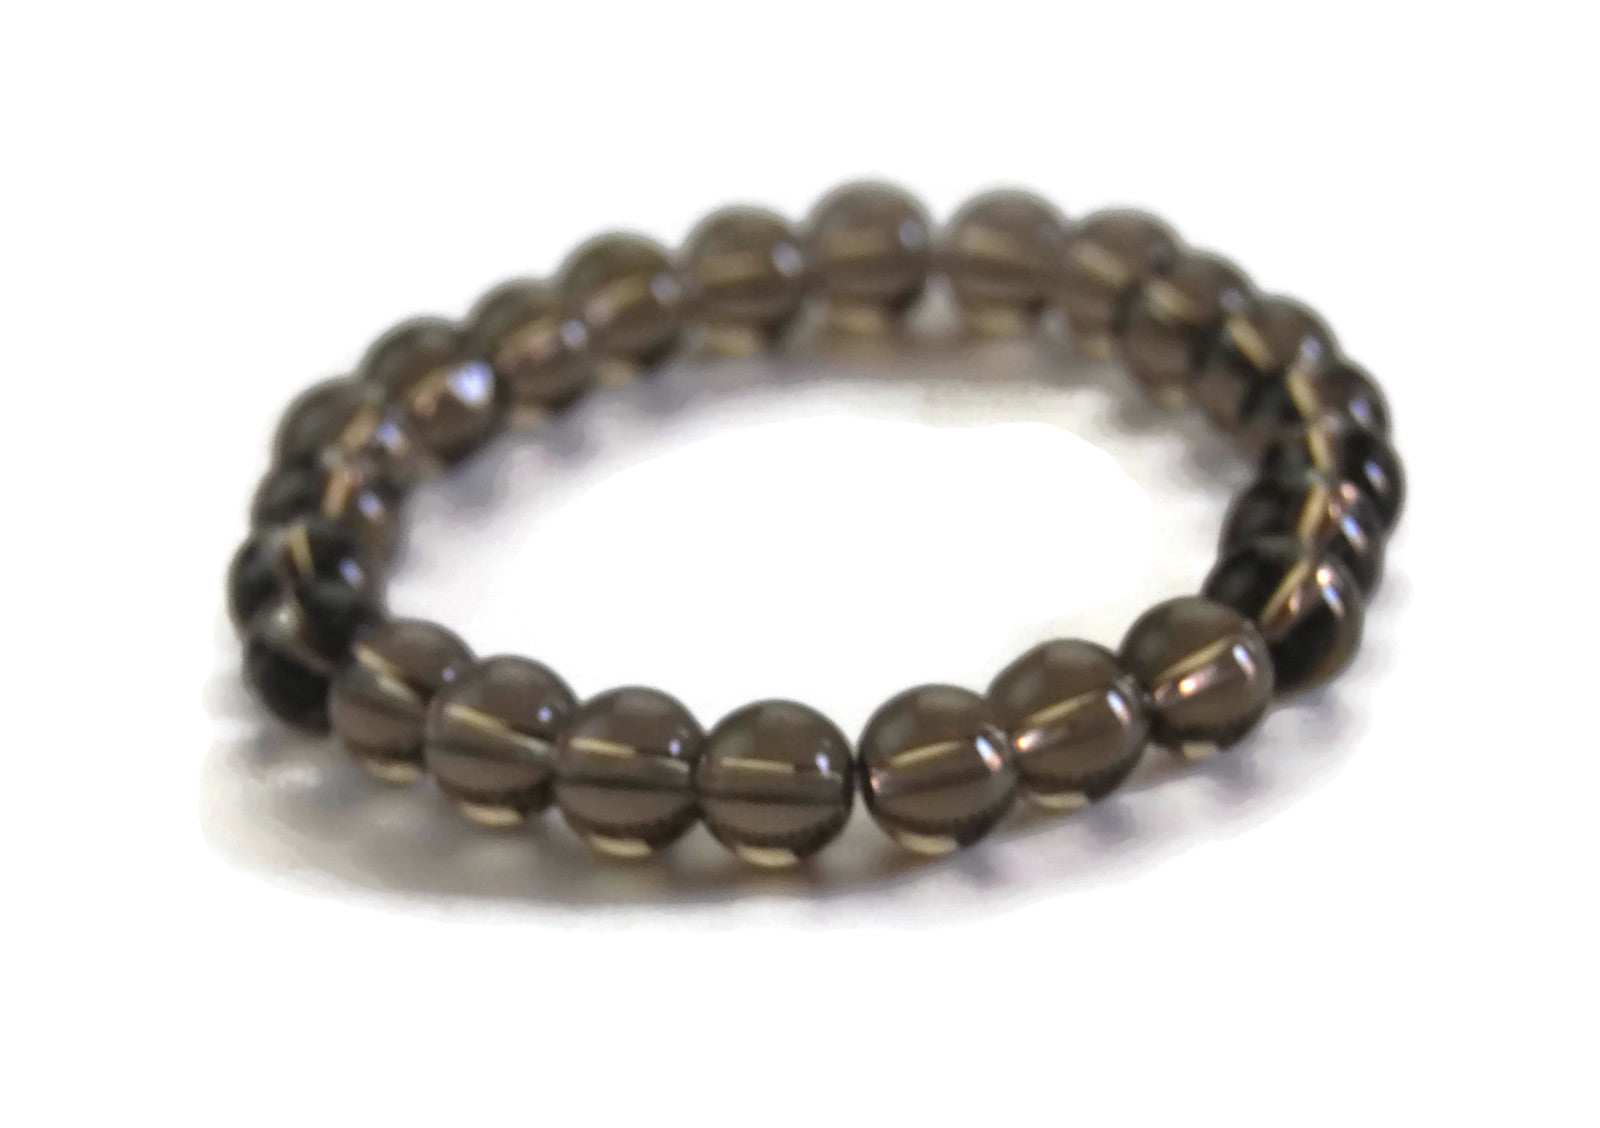 Lotus Line Black Citrine Stone Meditation Yoga Wrist Mala Stretch Bracelet, Root Base Chakra,